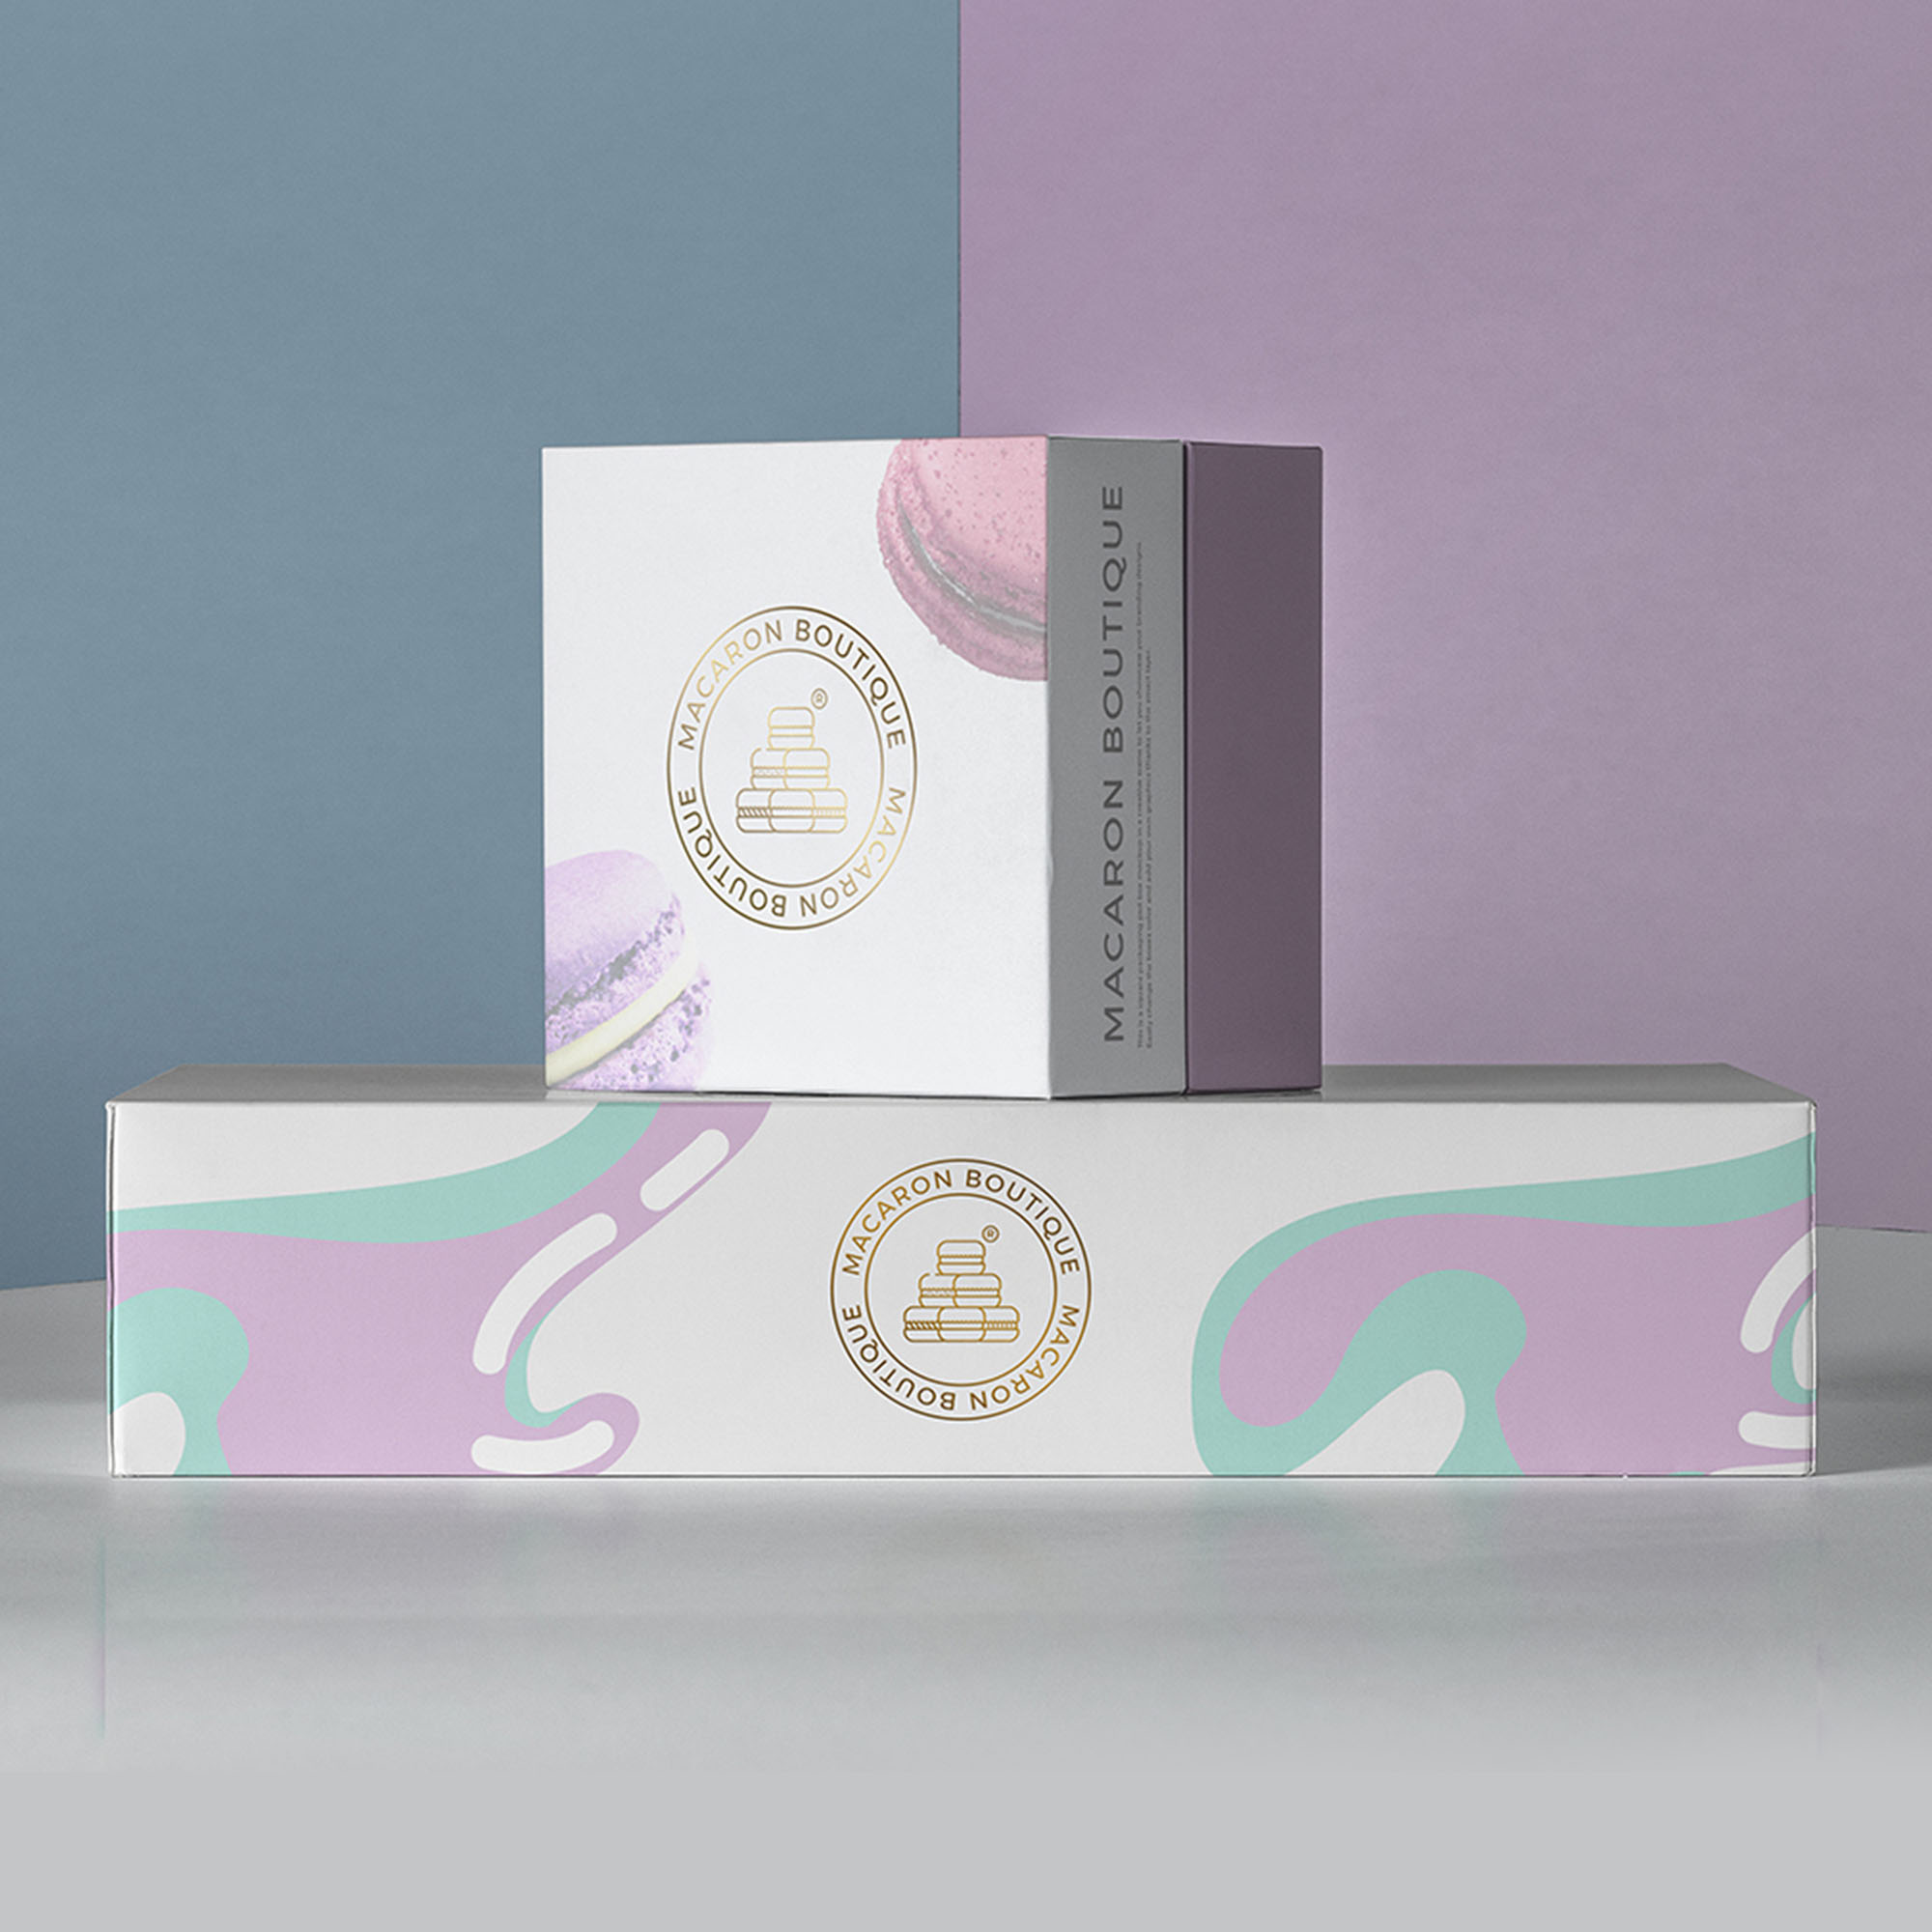 Stationery Design for Macaron Boutique Patisserie / World Brand Design Society